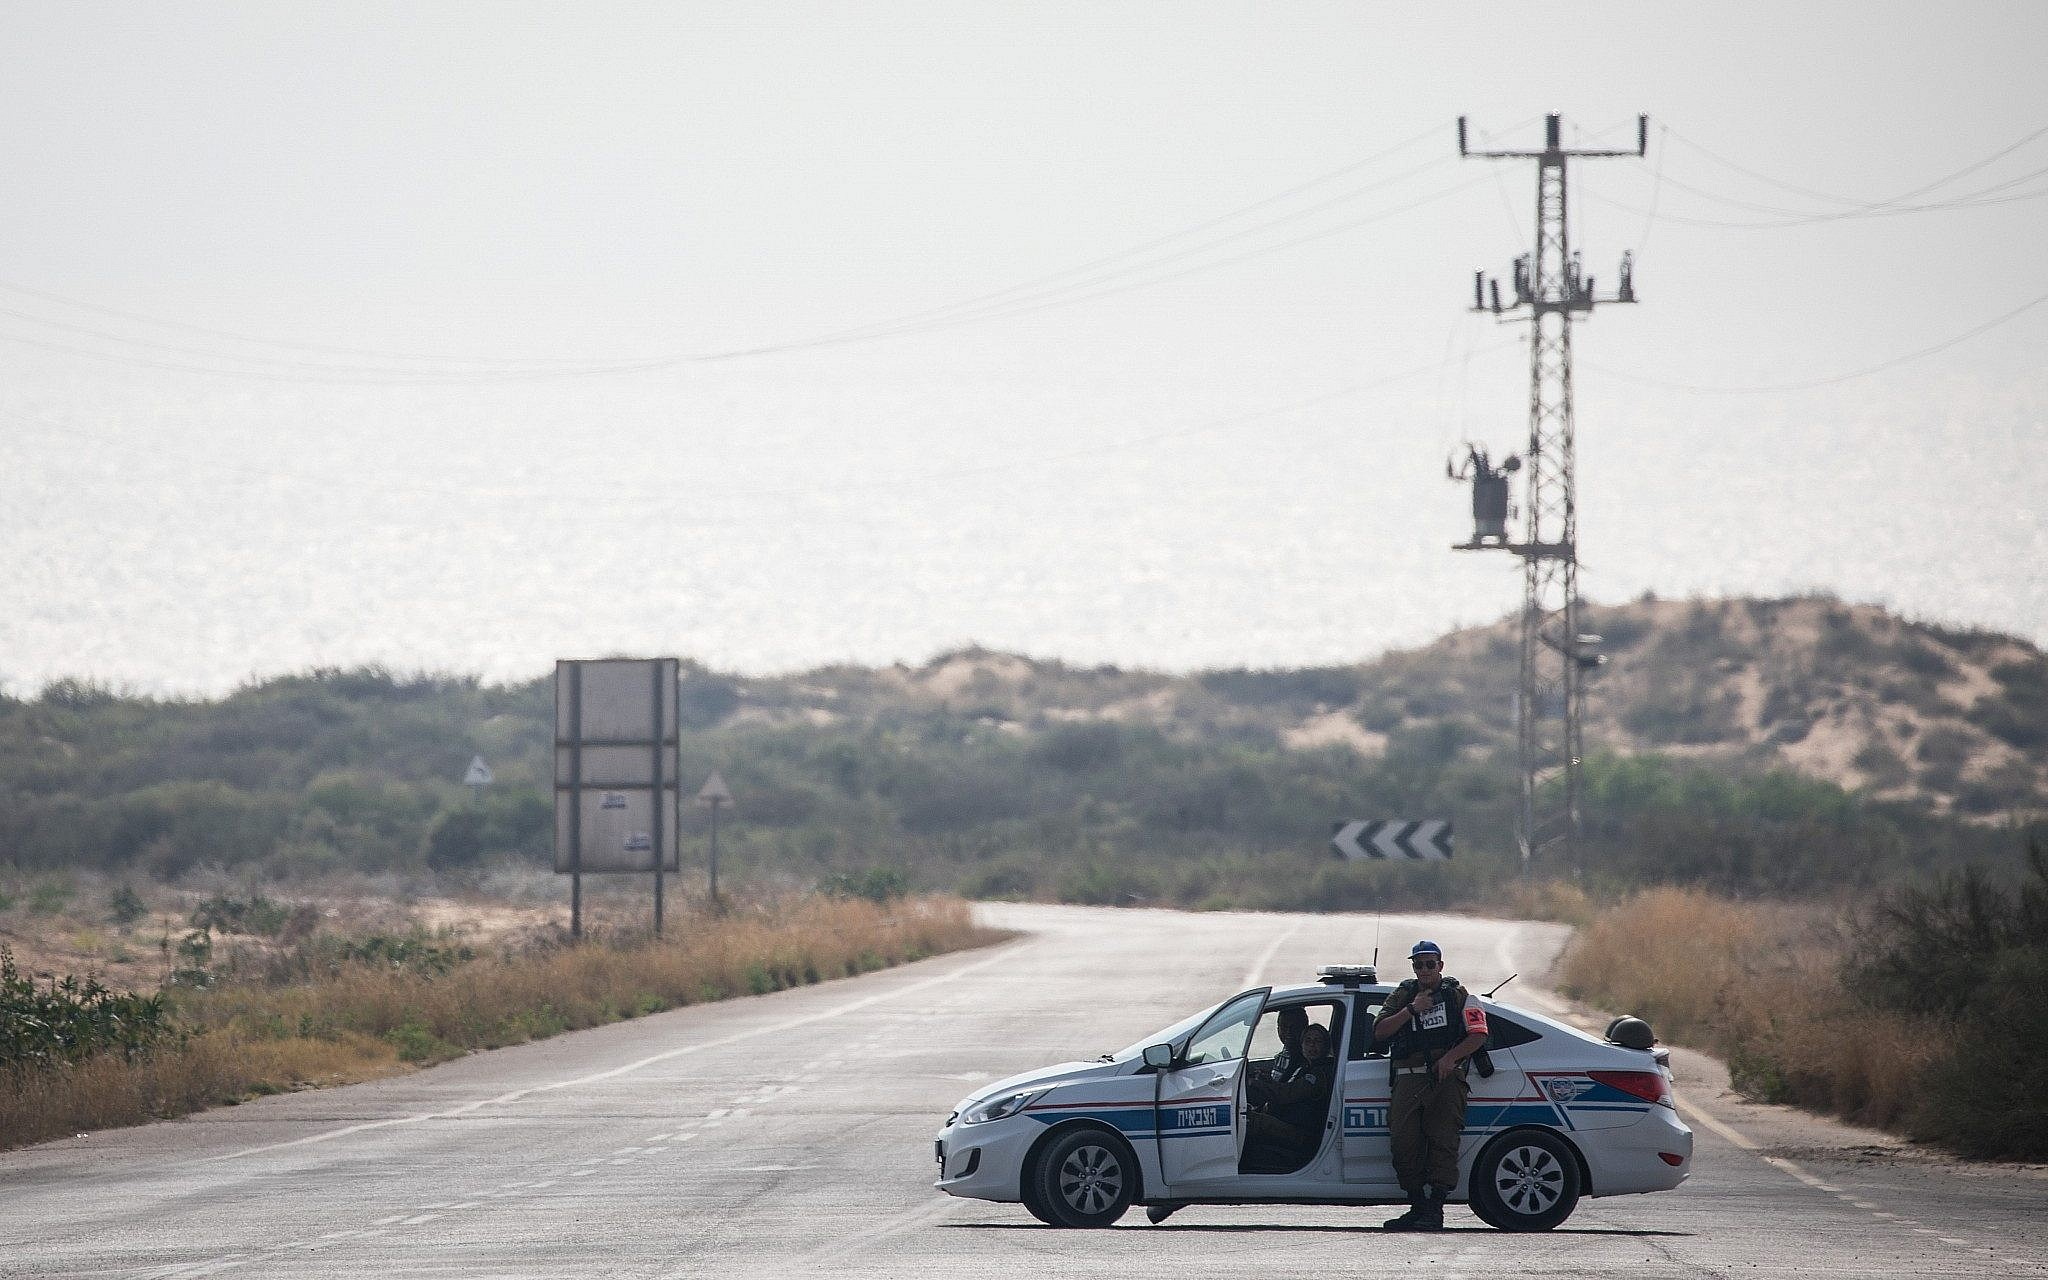 A Military Police car blocks a road leading to Zikim beach after it was closed to visitors due to escalating rocket fire from the Gaza Strip toward southern Israel